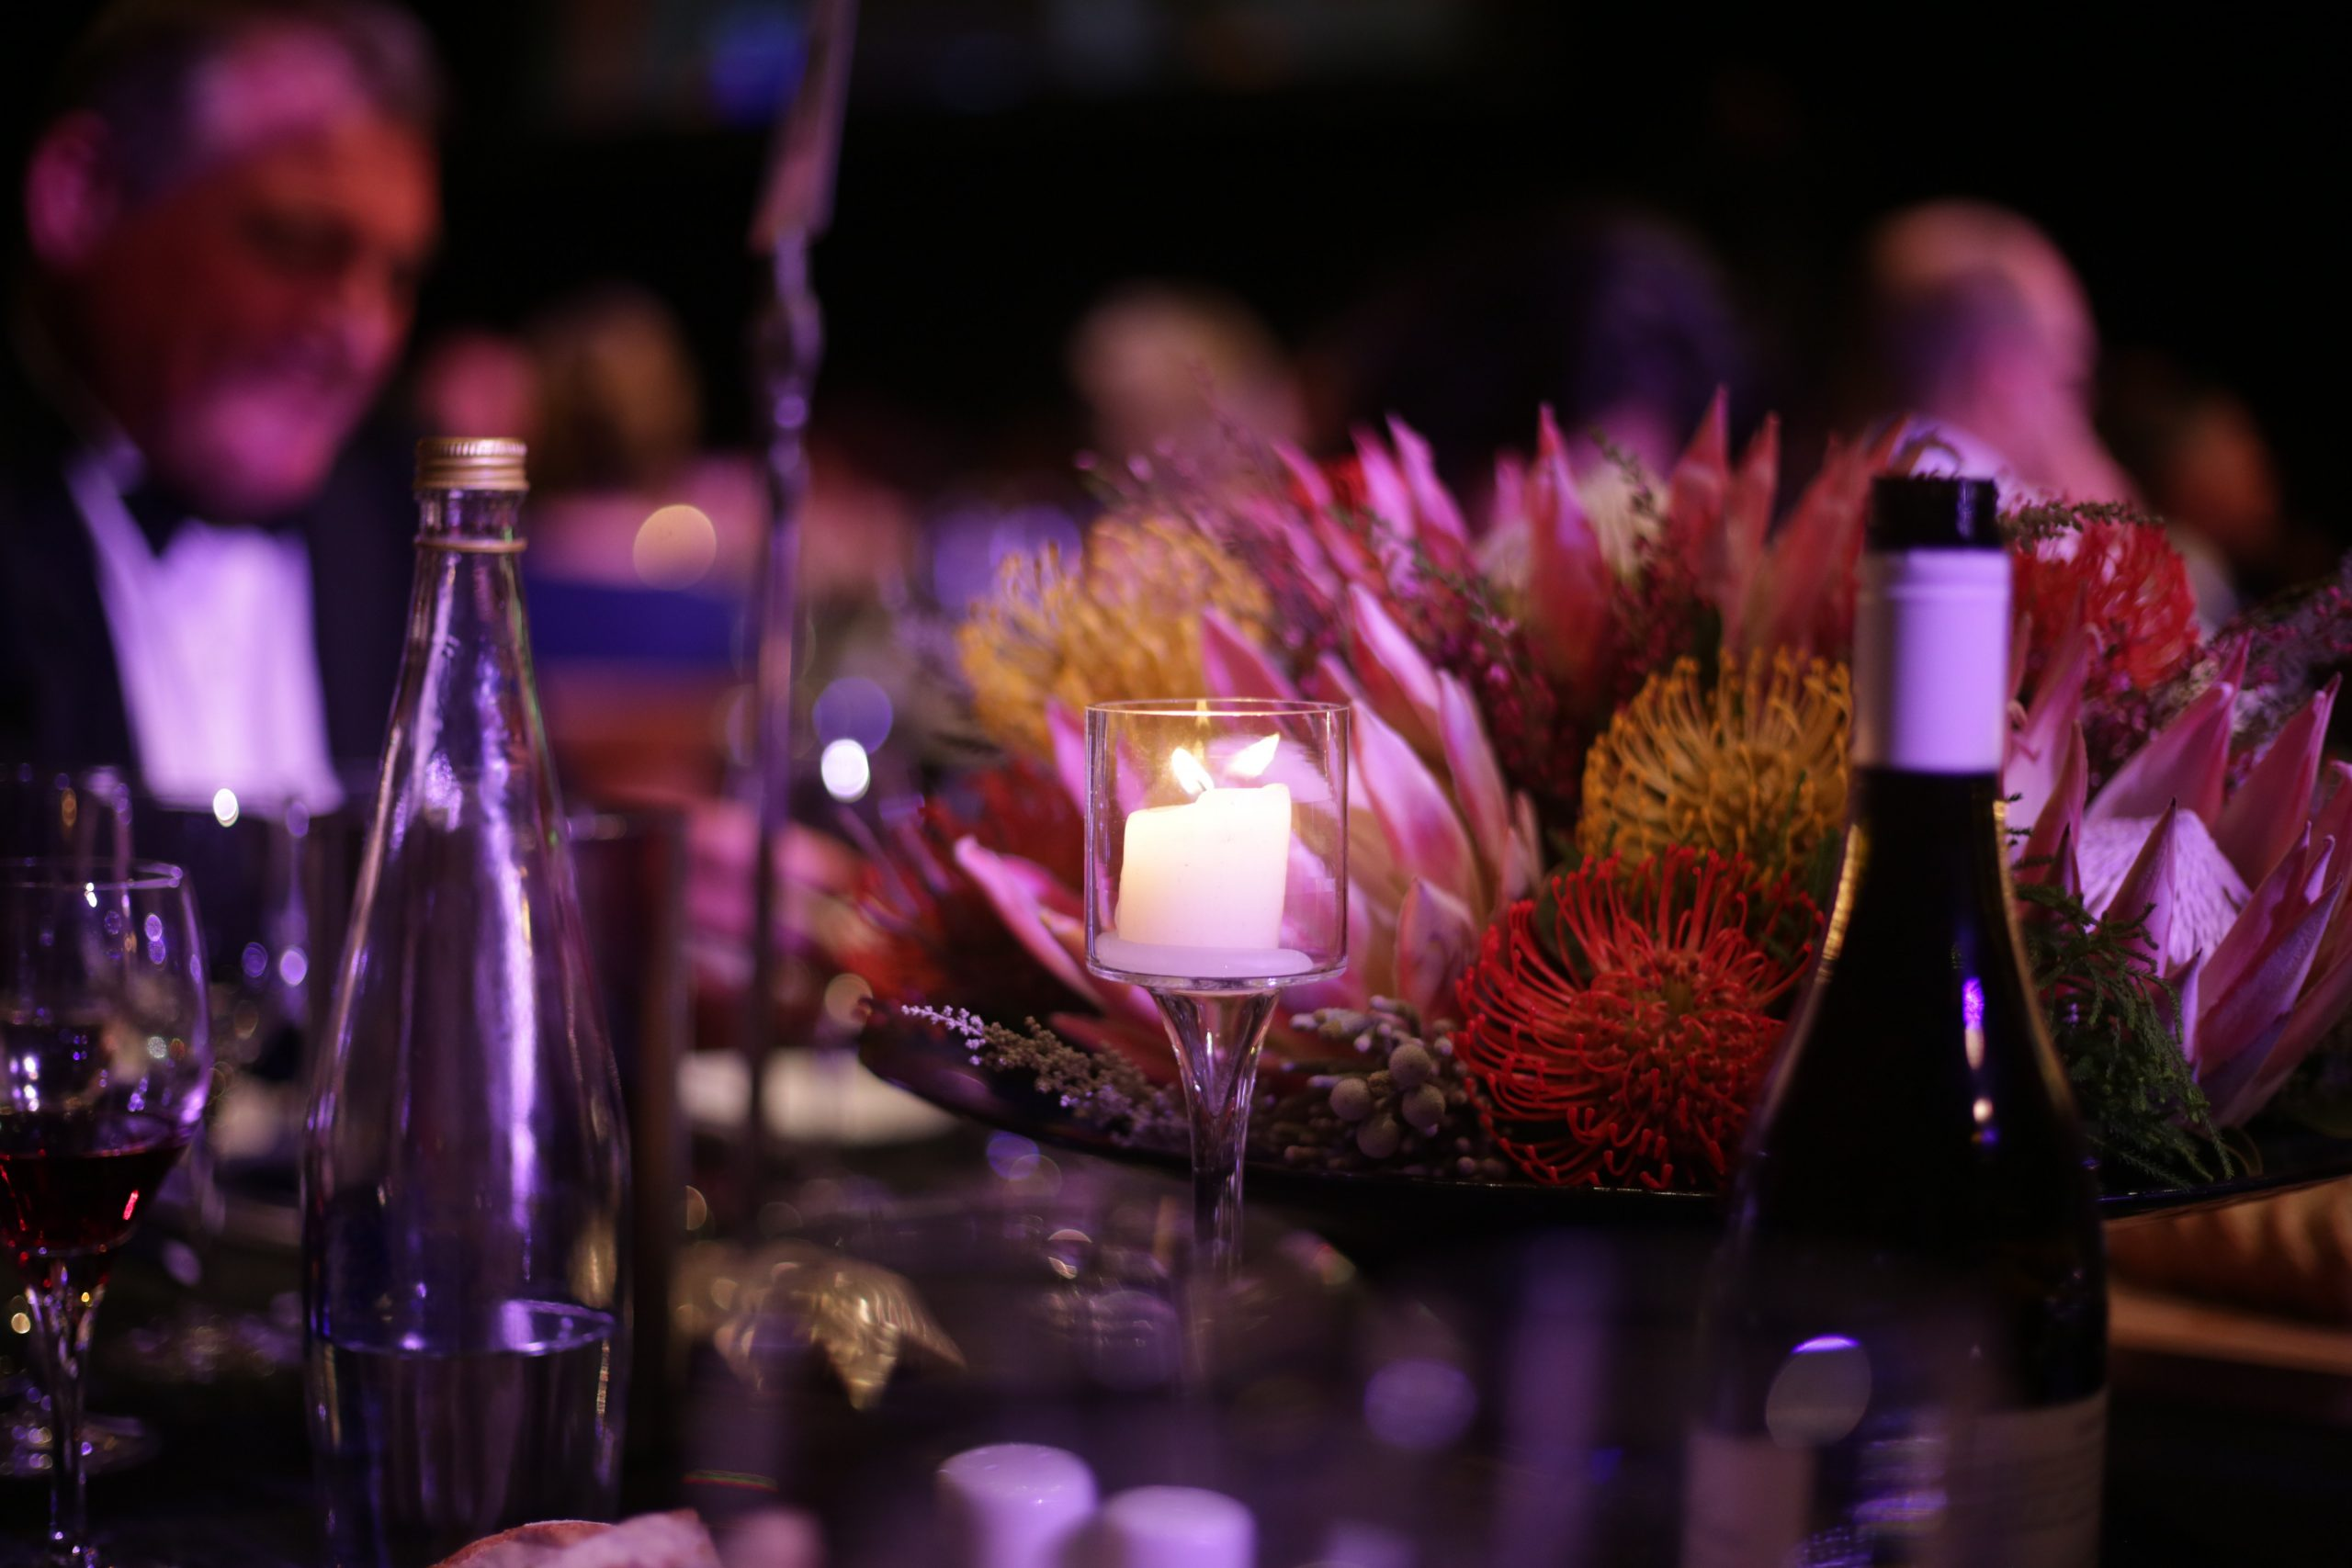 Top 10 Candlelight Dinner Restaurants In Bangalore For A Lovely Date